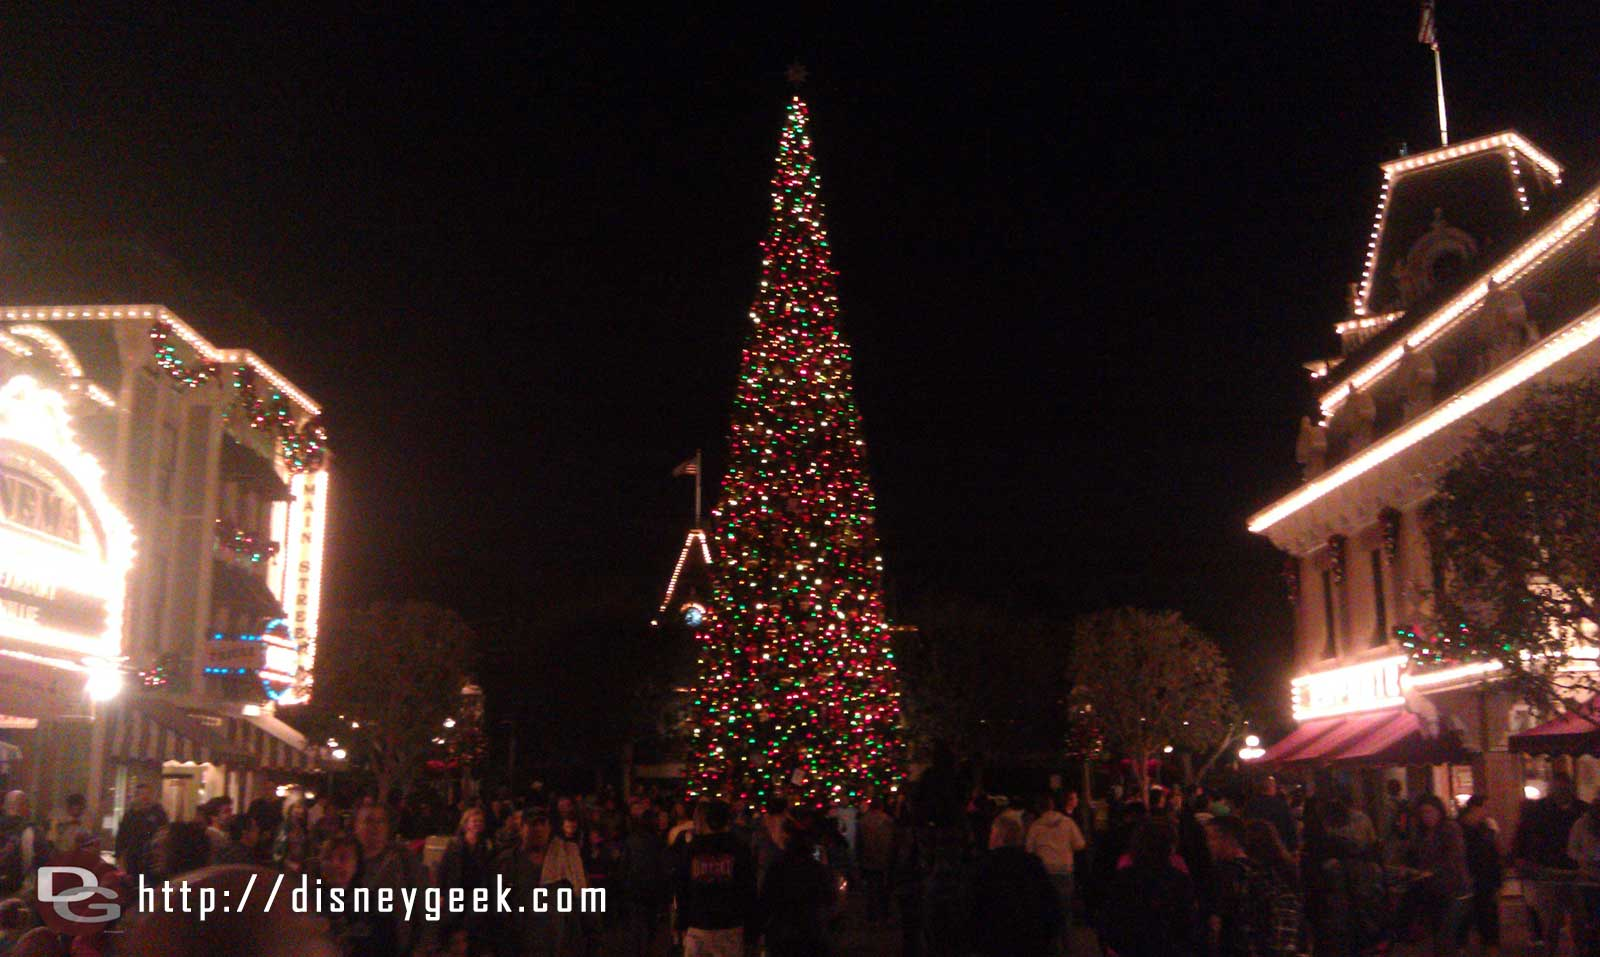 over to Disneyland.  The tree on Main Street USA